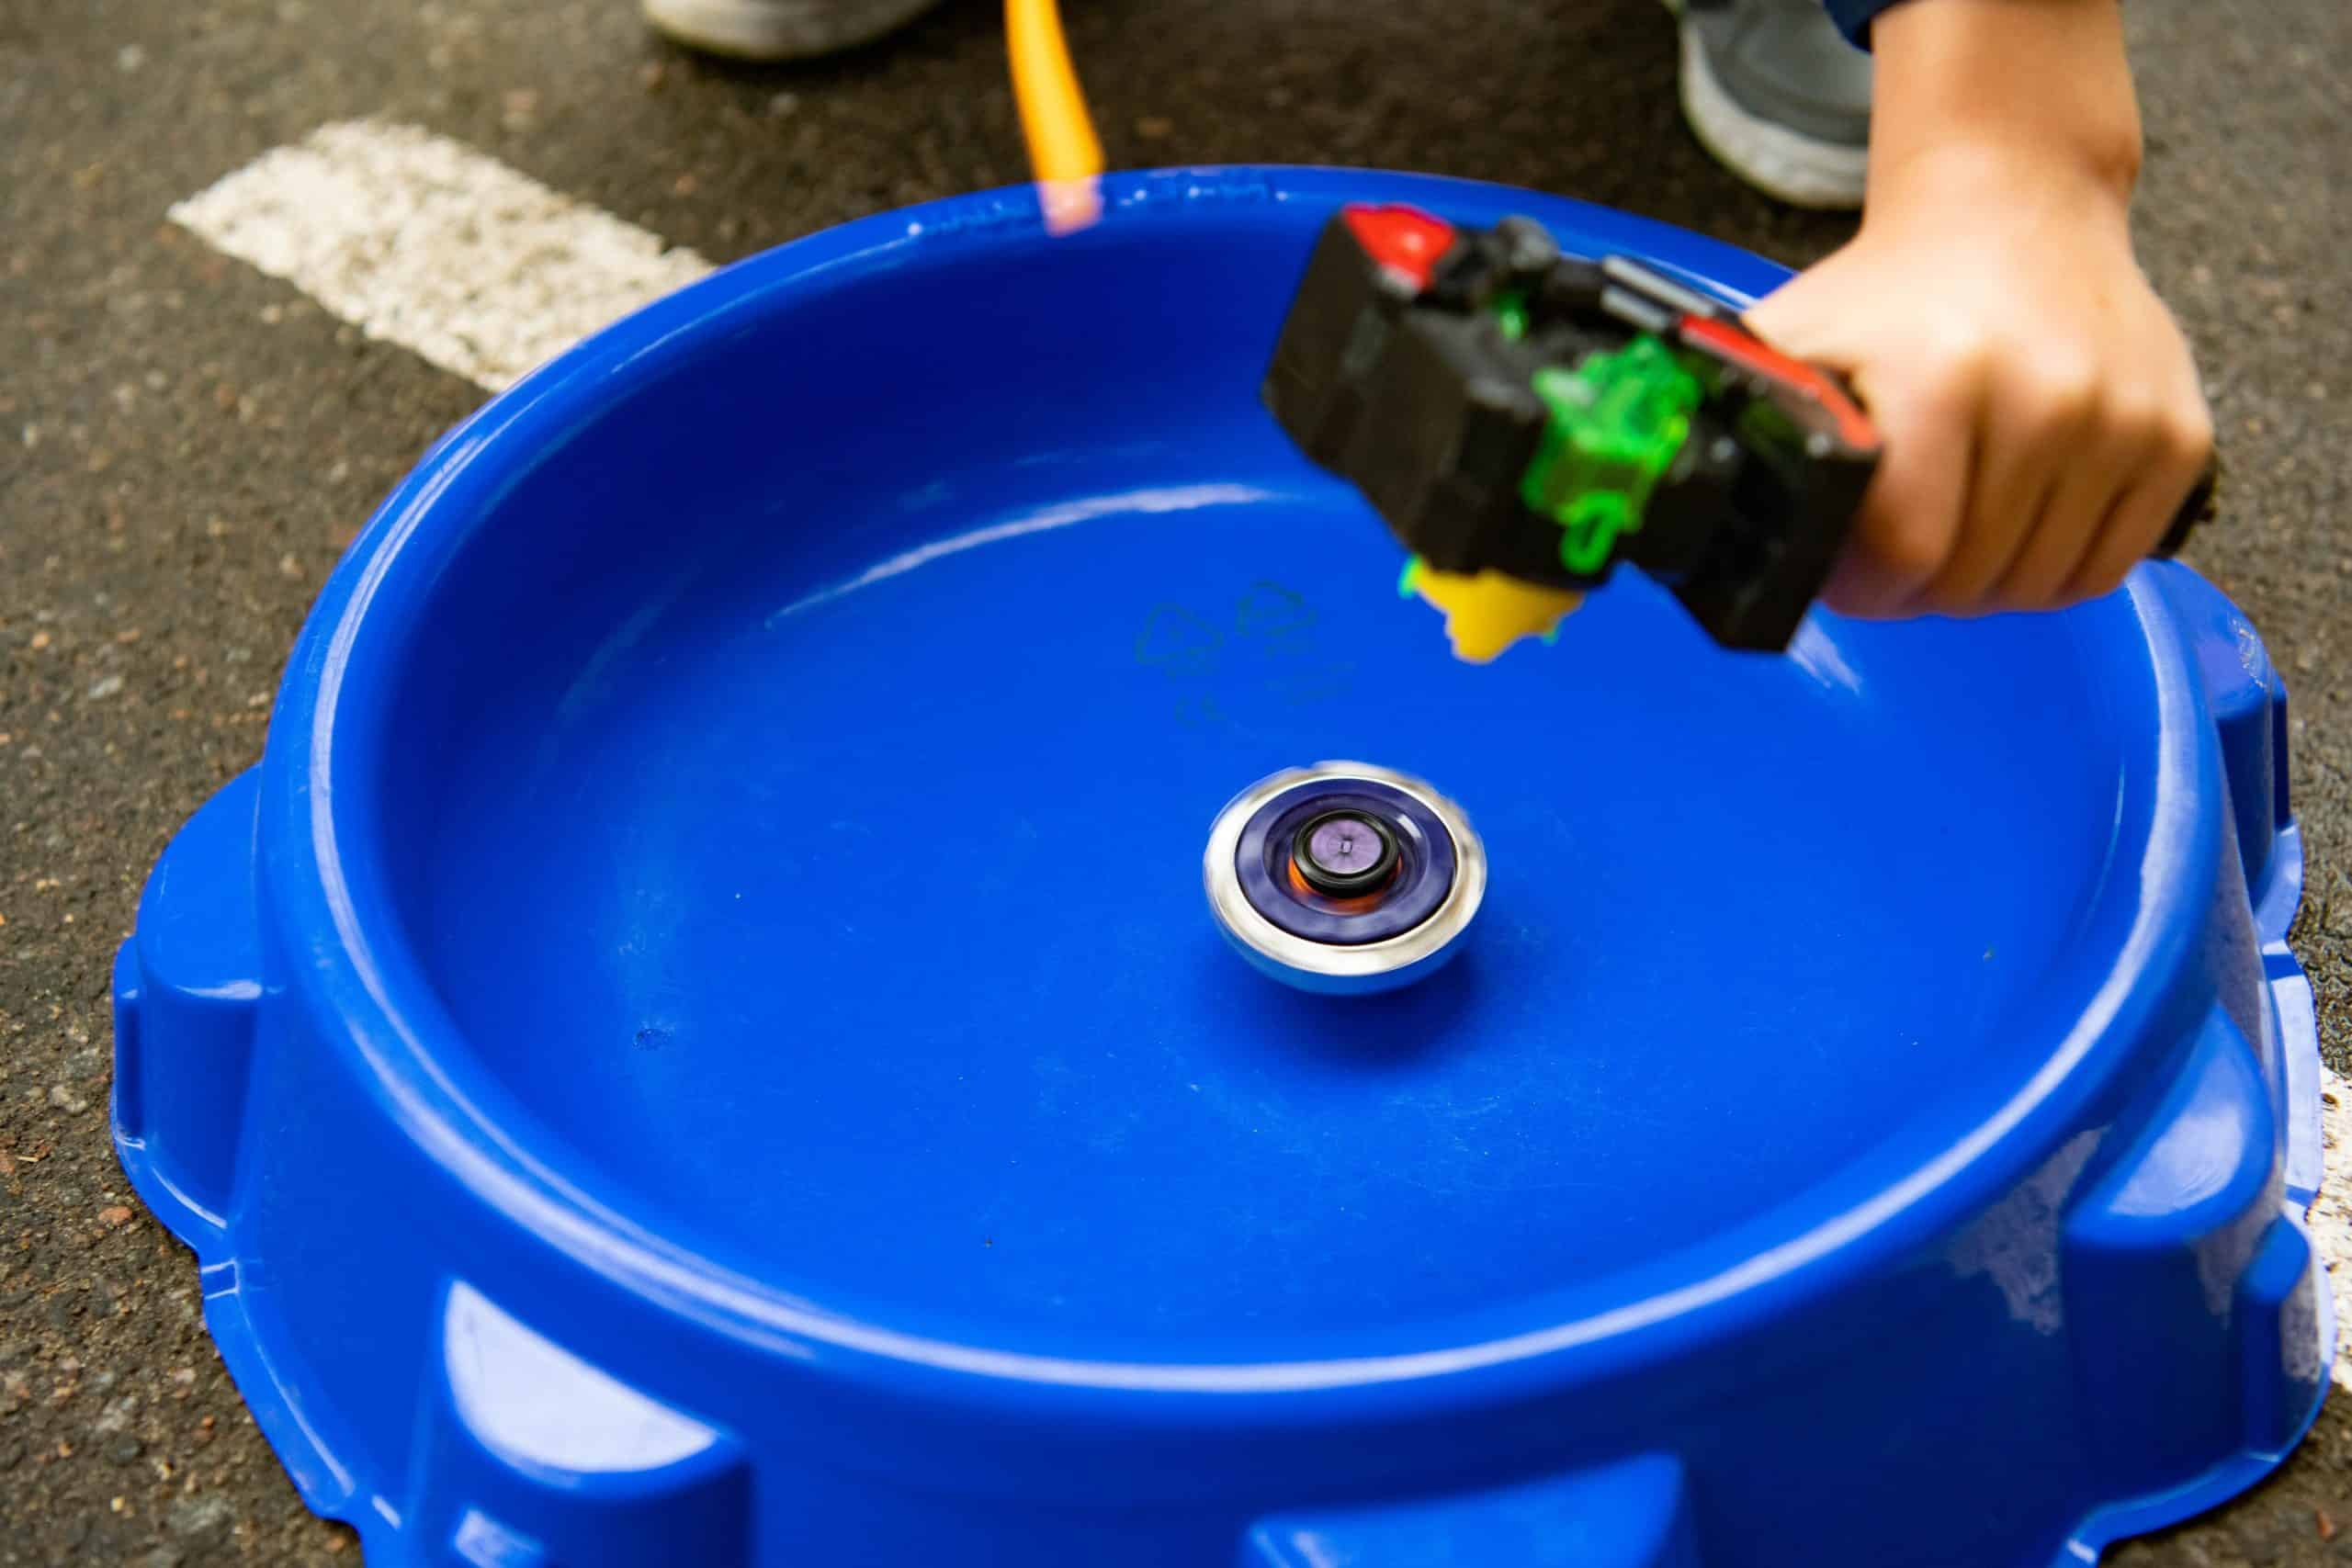 The beyblade starter with beyblade (spinning tops) in the blue arena